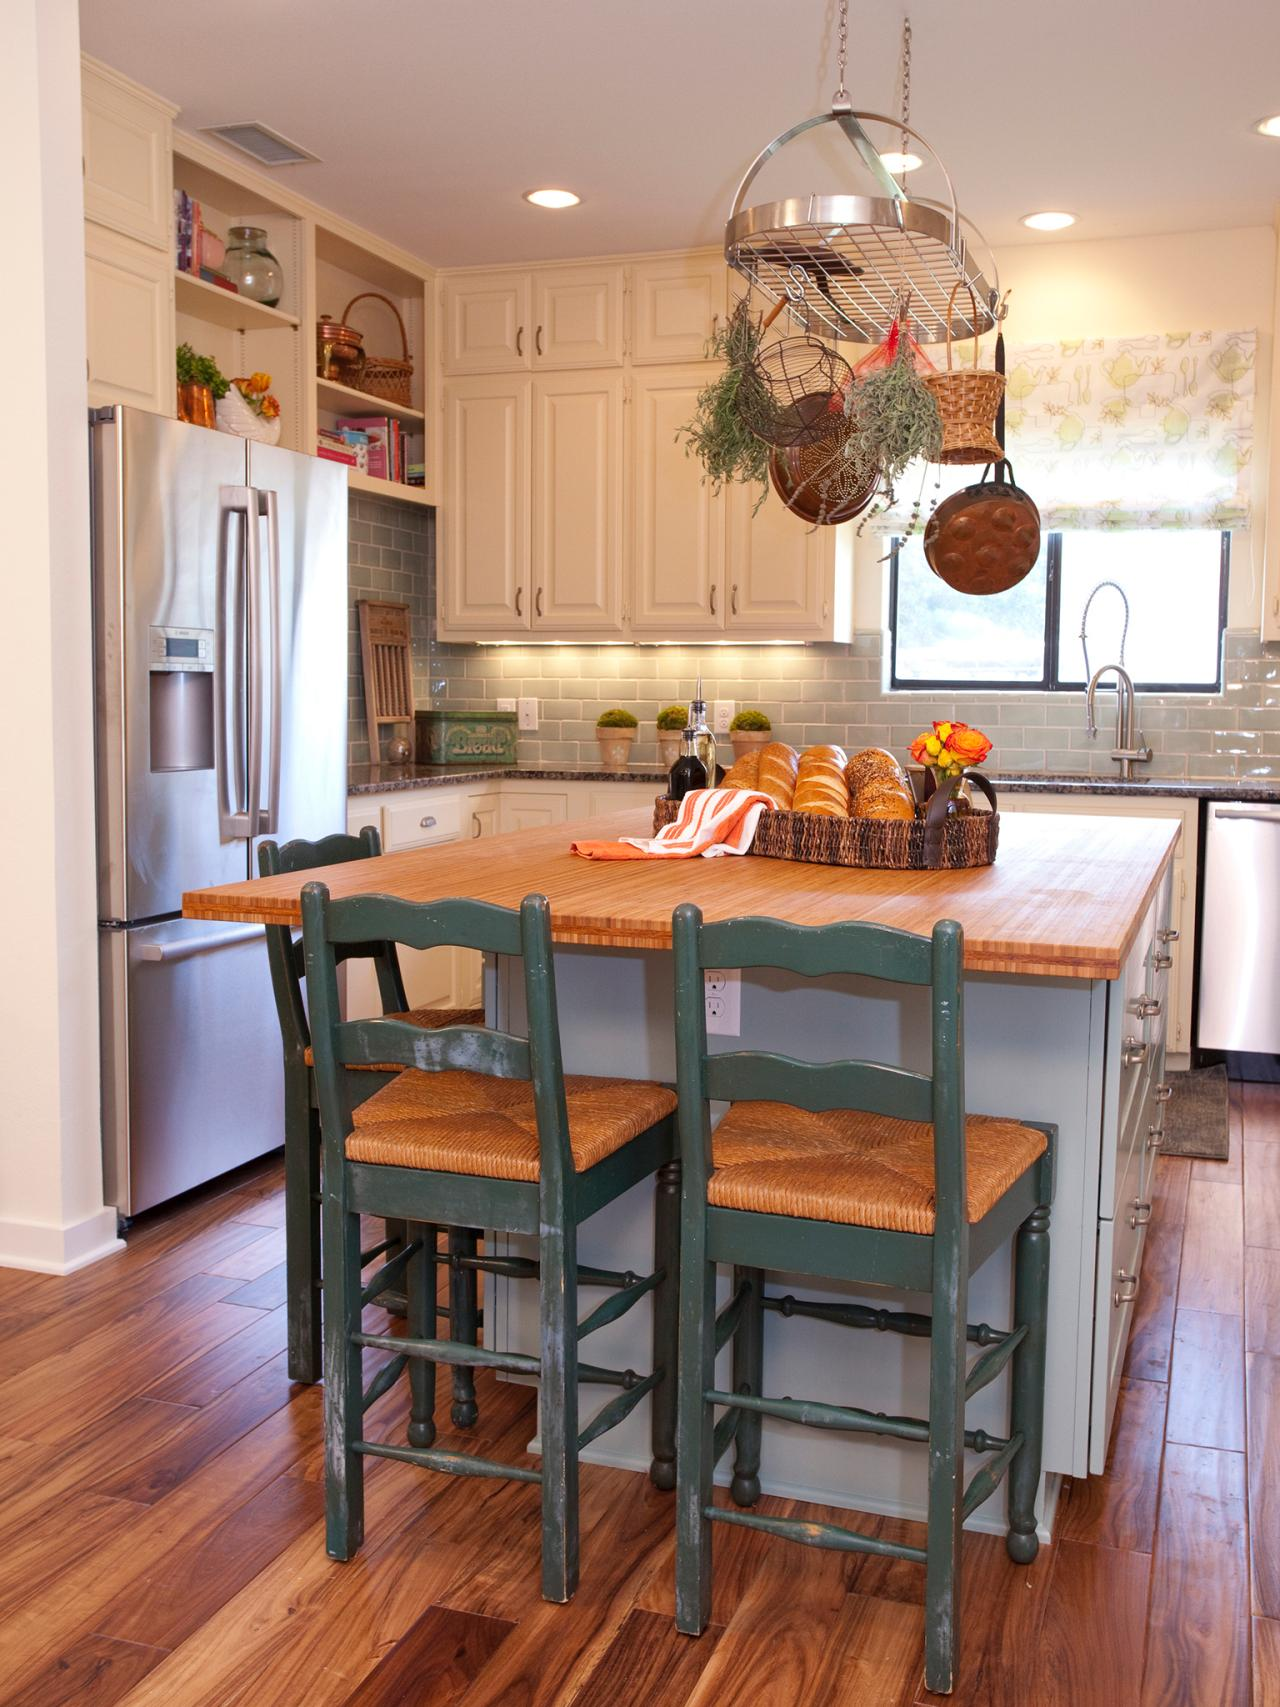 White Kitchen Island Ideas small kitchen island ideas: pictures & tips from hgtv | hgtv